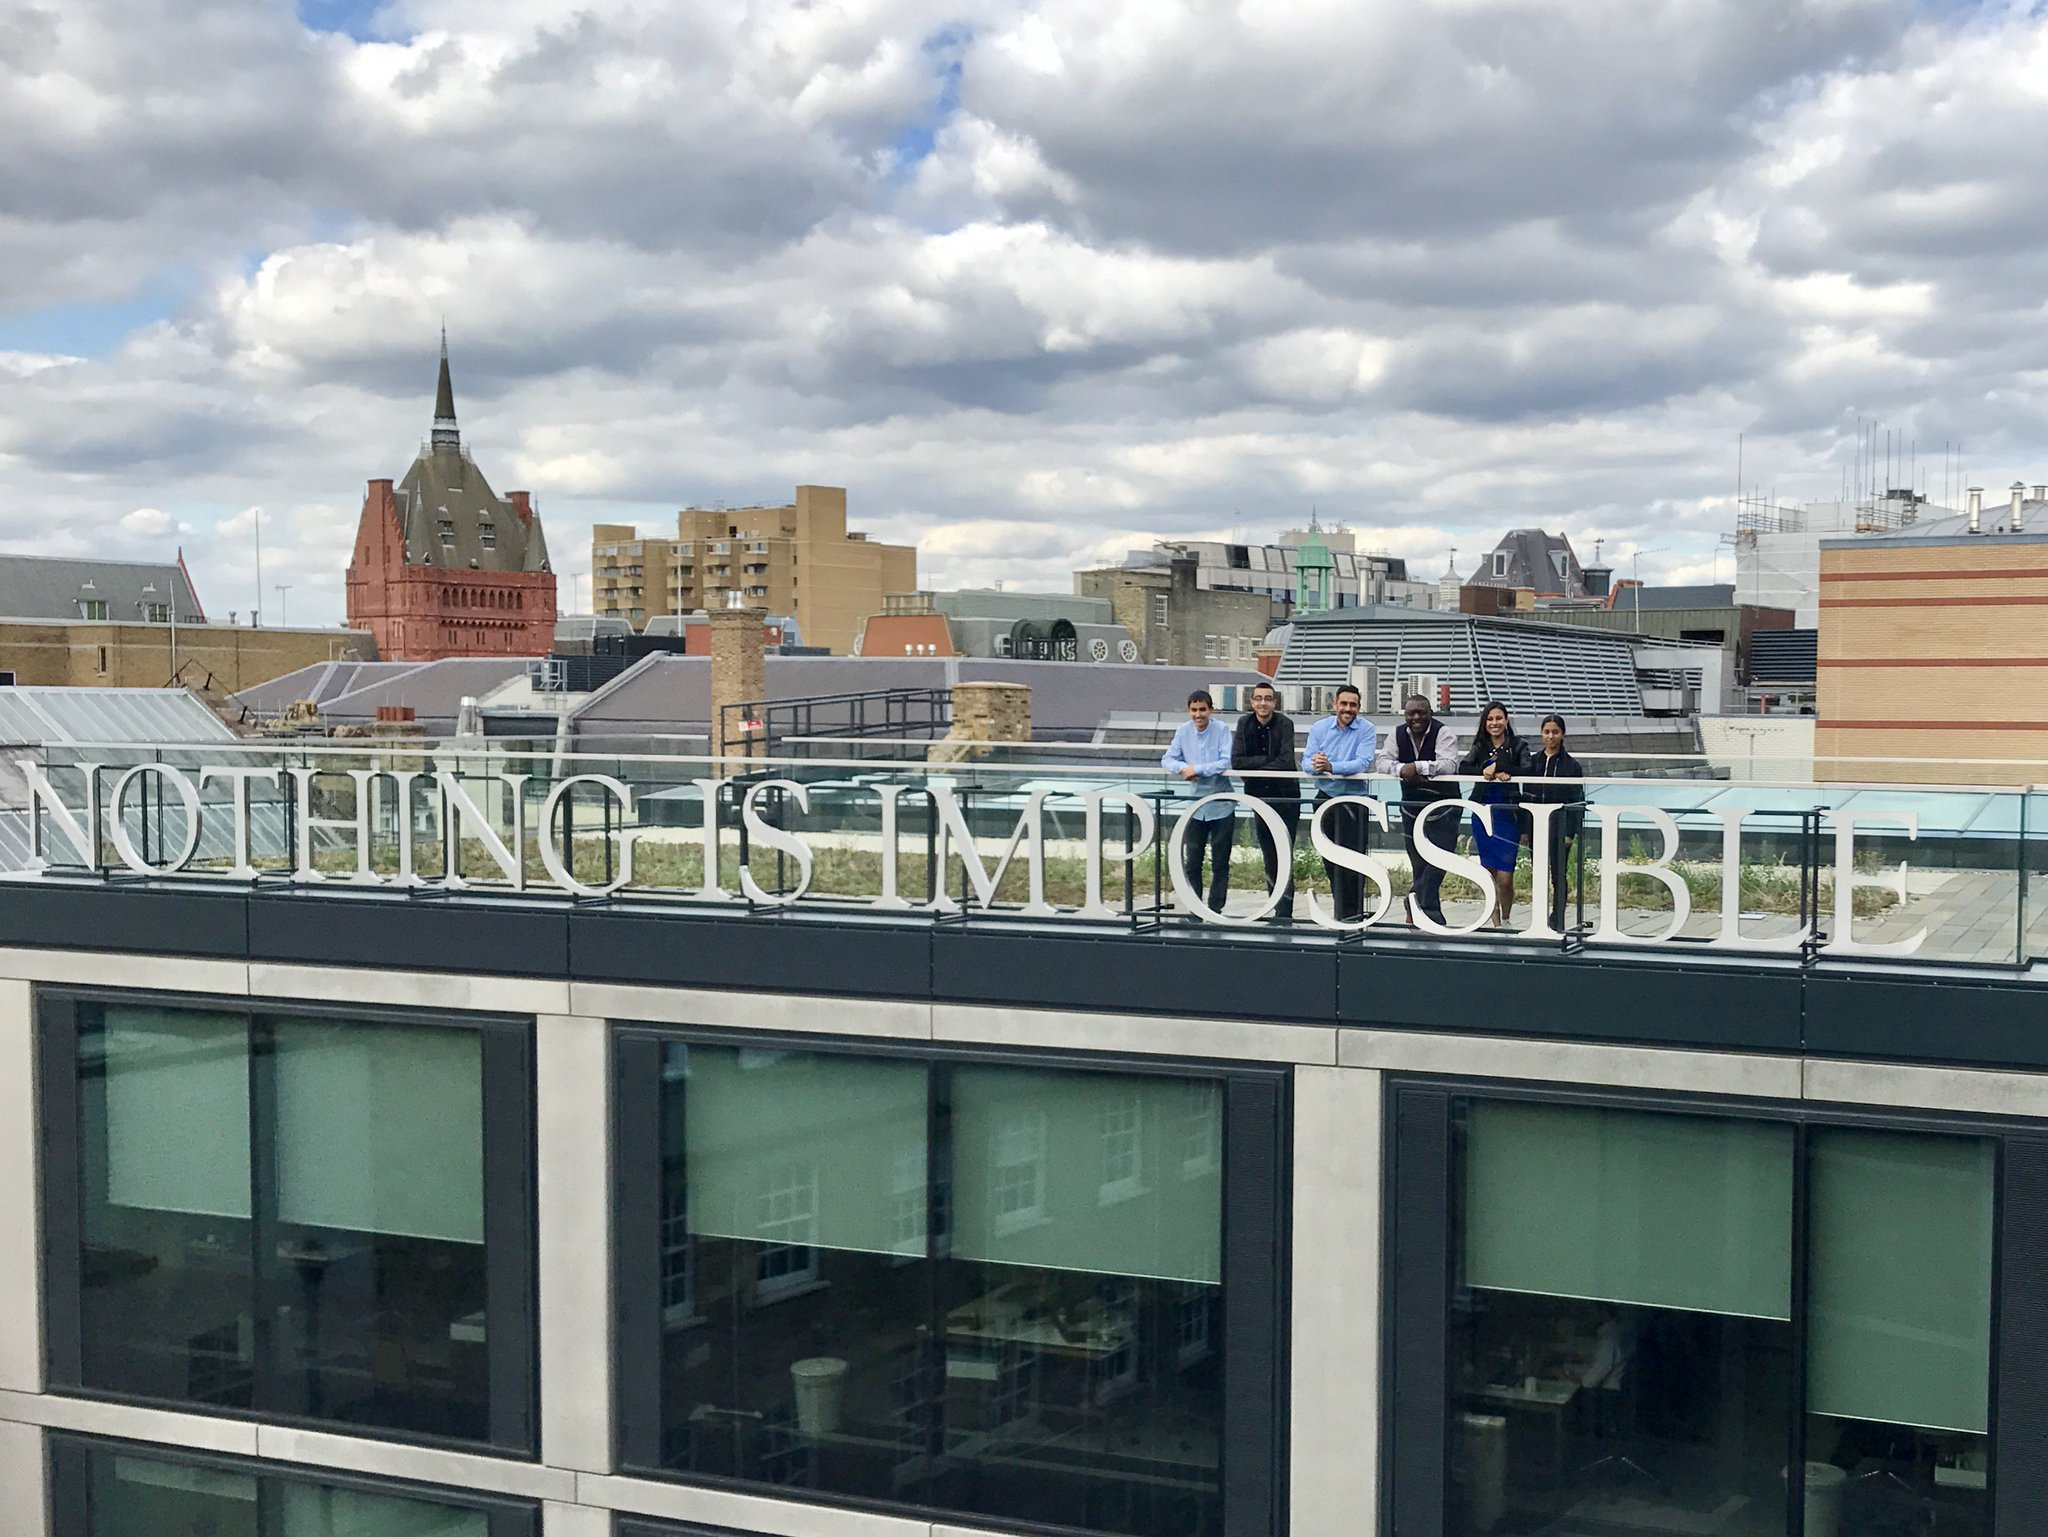 We've loved having @Capital__City's students at @saatchilondon this week and showing them that #NOTHINGISIMPOSSIBLE https://t.co/4nXgFsGm4e